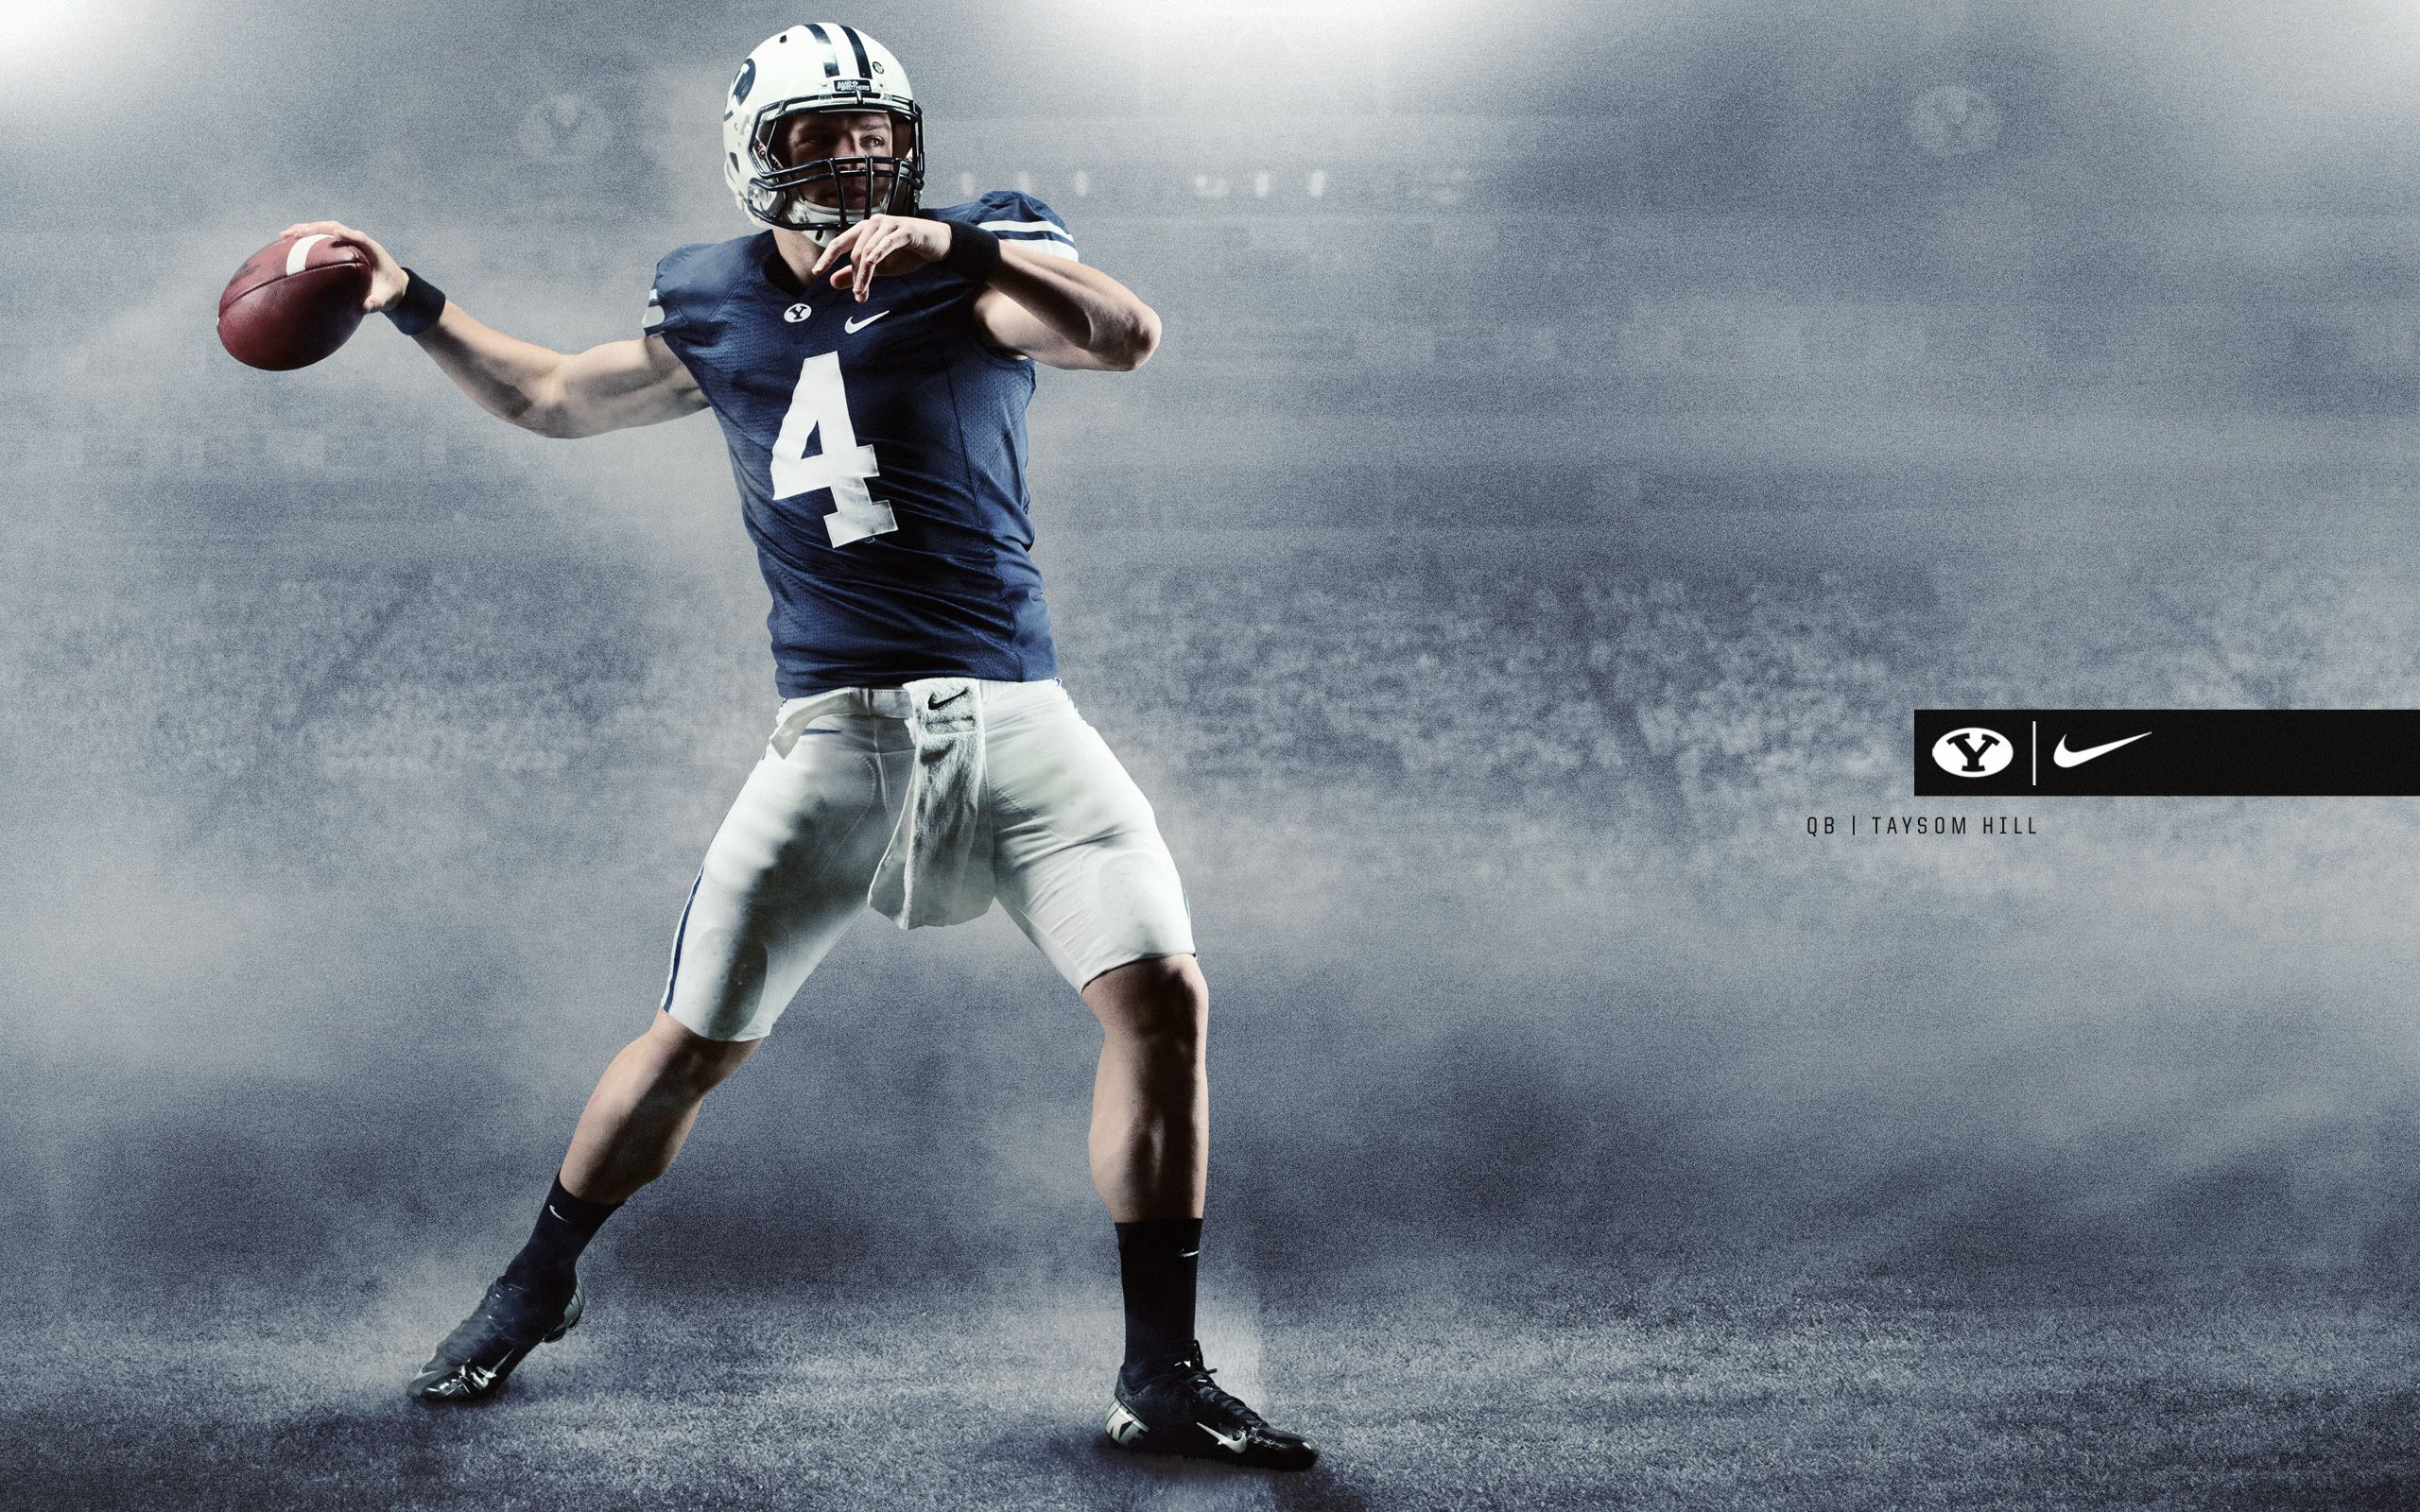 Taysom Hill Wallpaper Byu Football Football Poster Team Sports Pictures